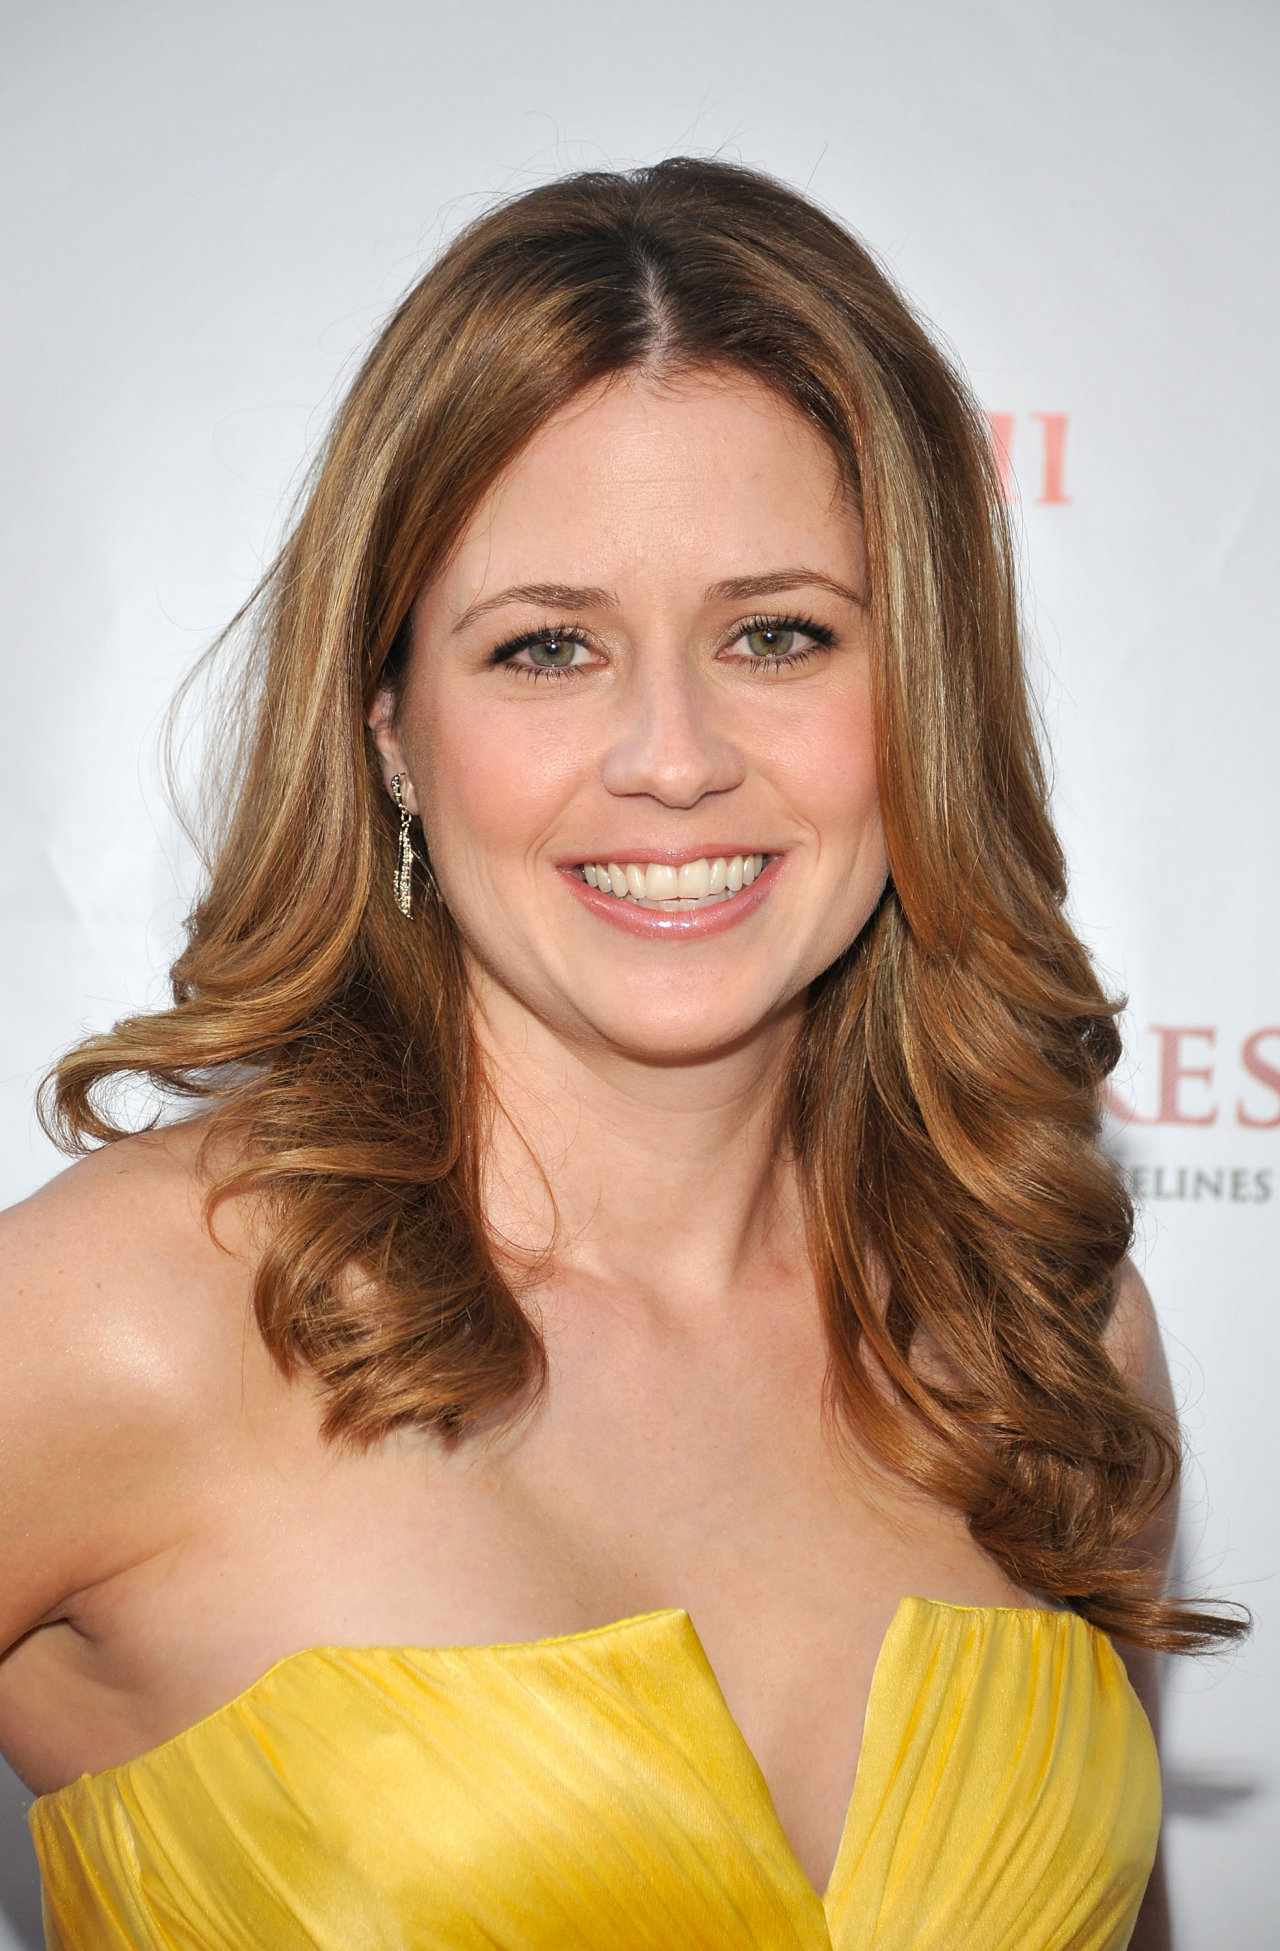 Jenna Fischer leaked wallpapers